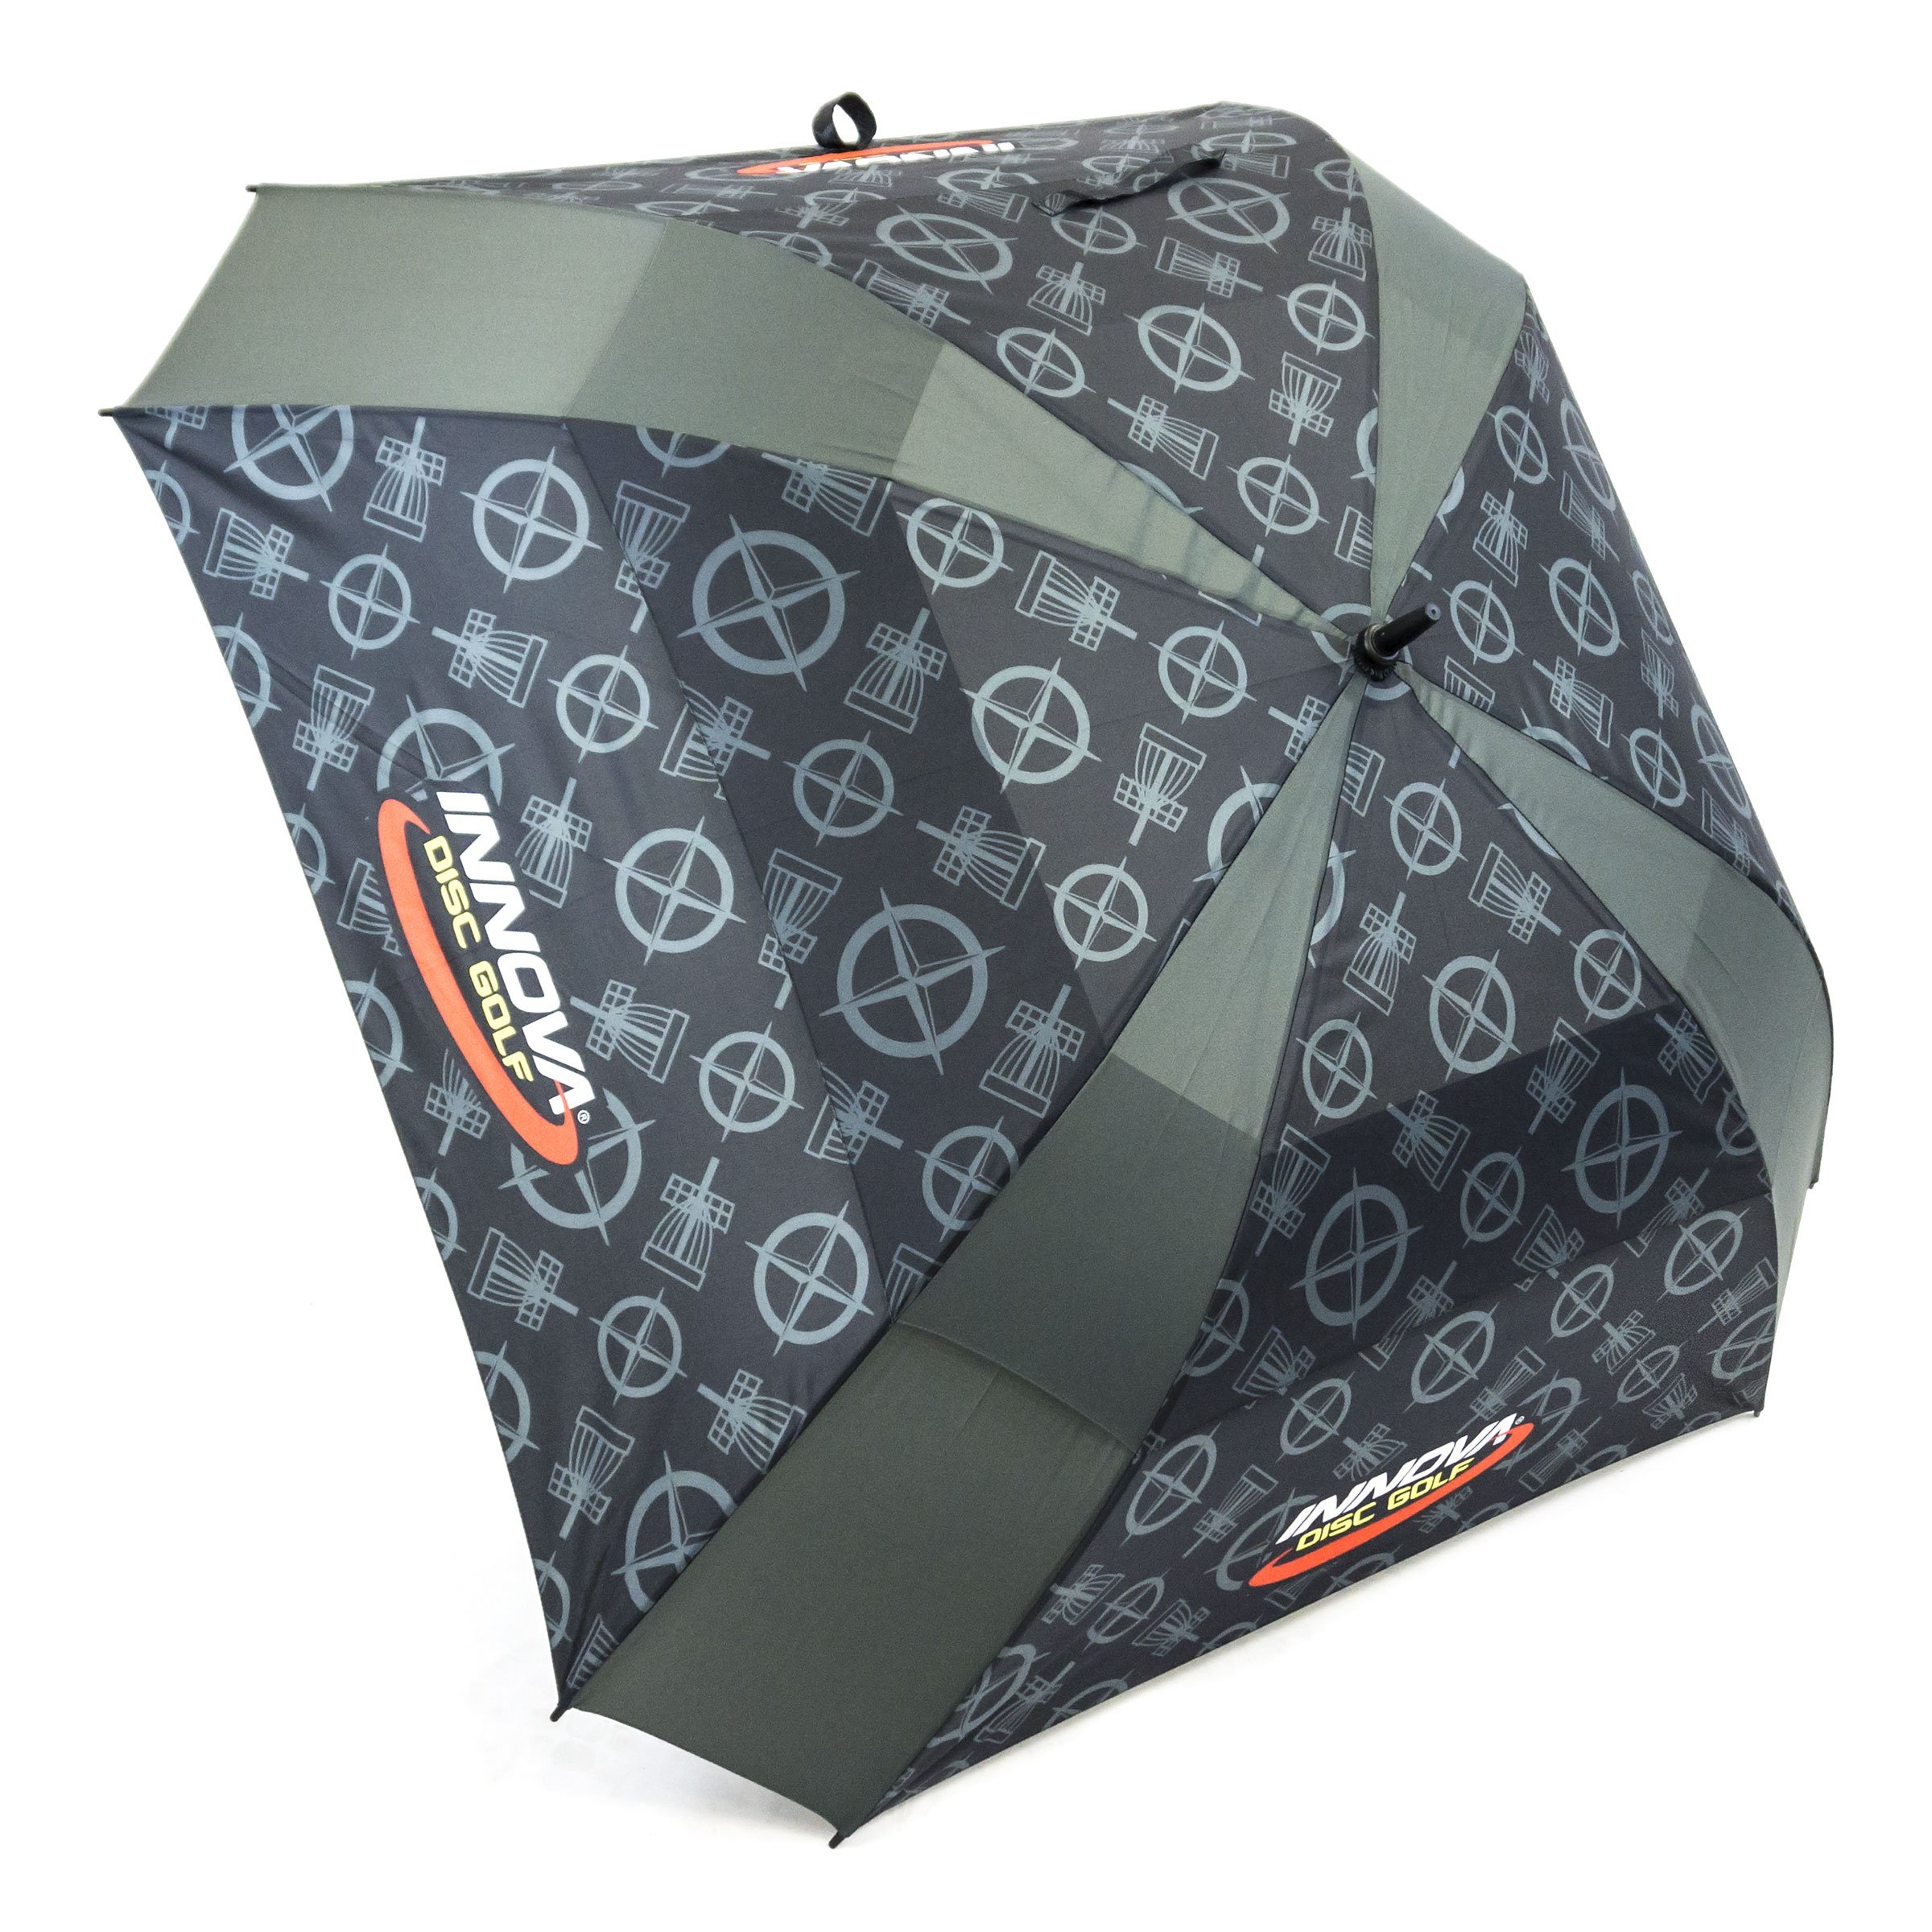 INNOVA Disc Golf Proto Pattern Golf Umbrella - Black